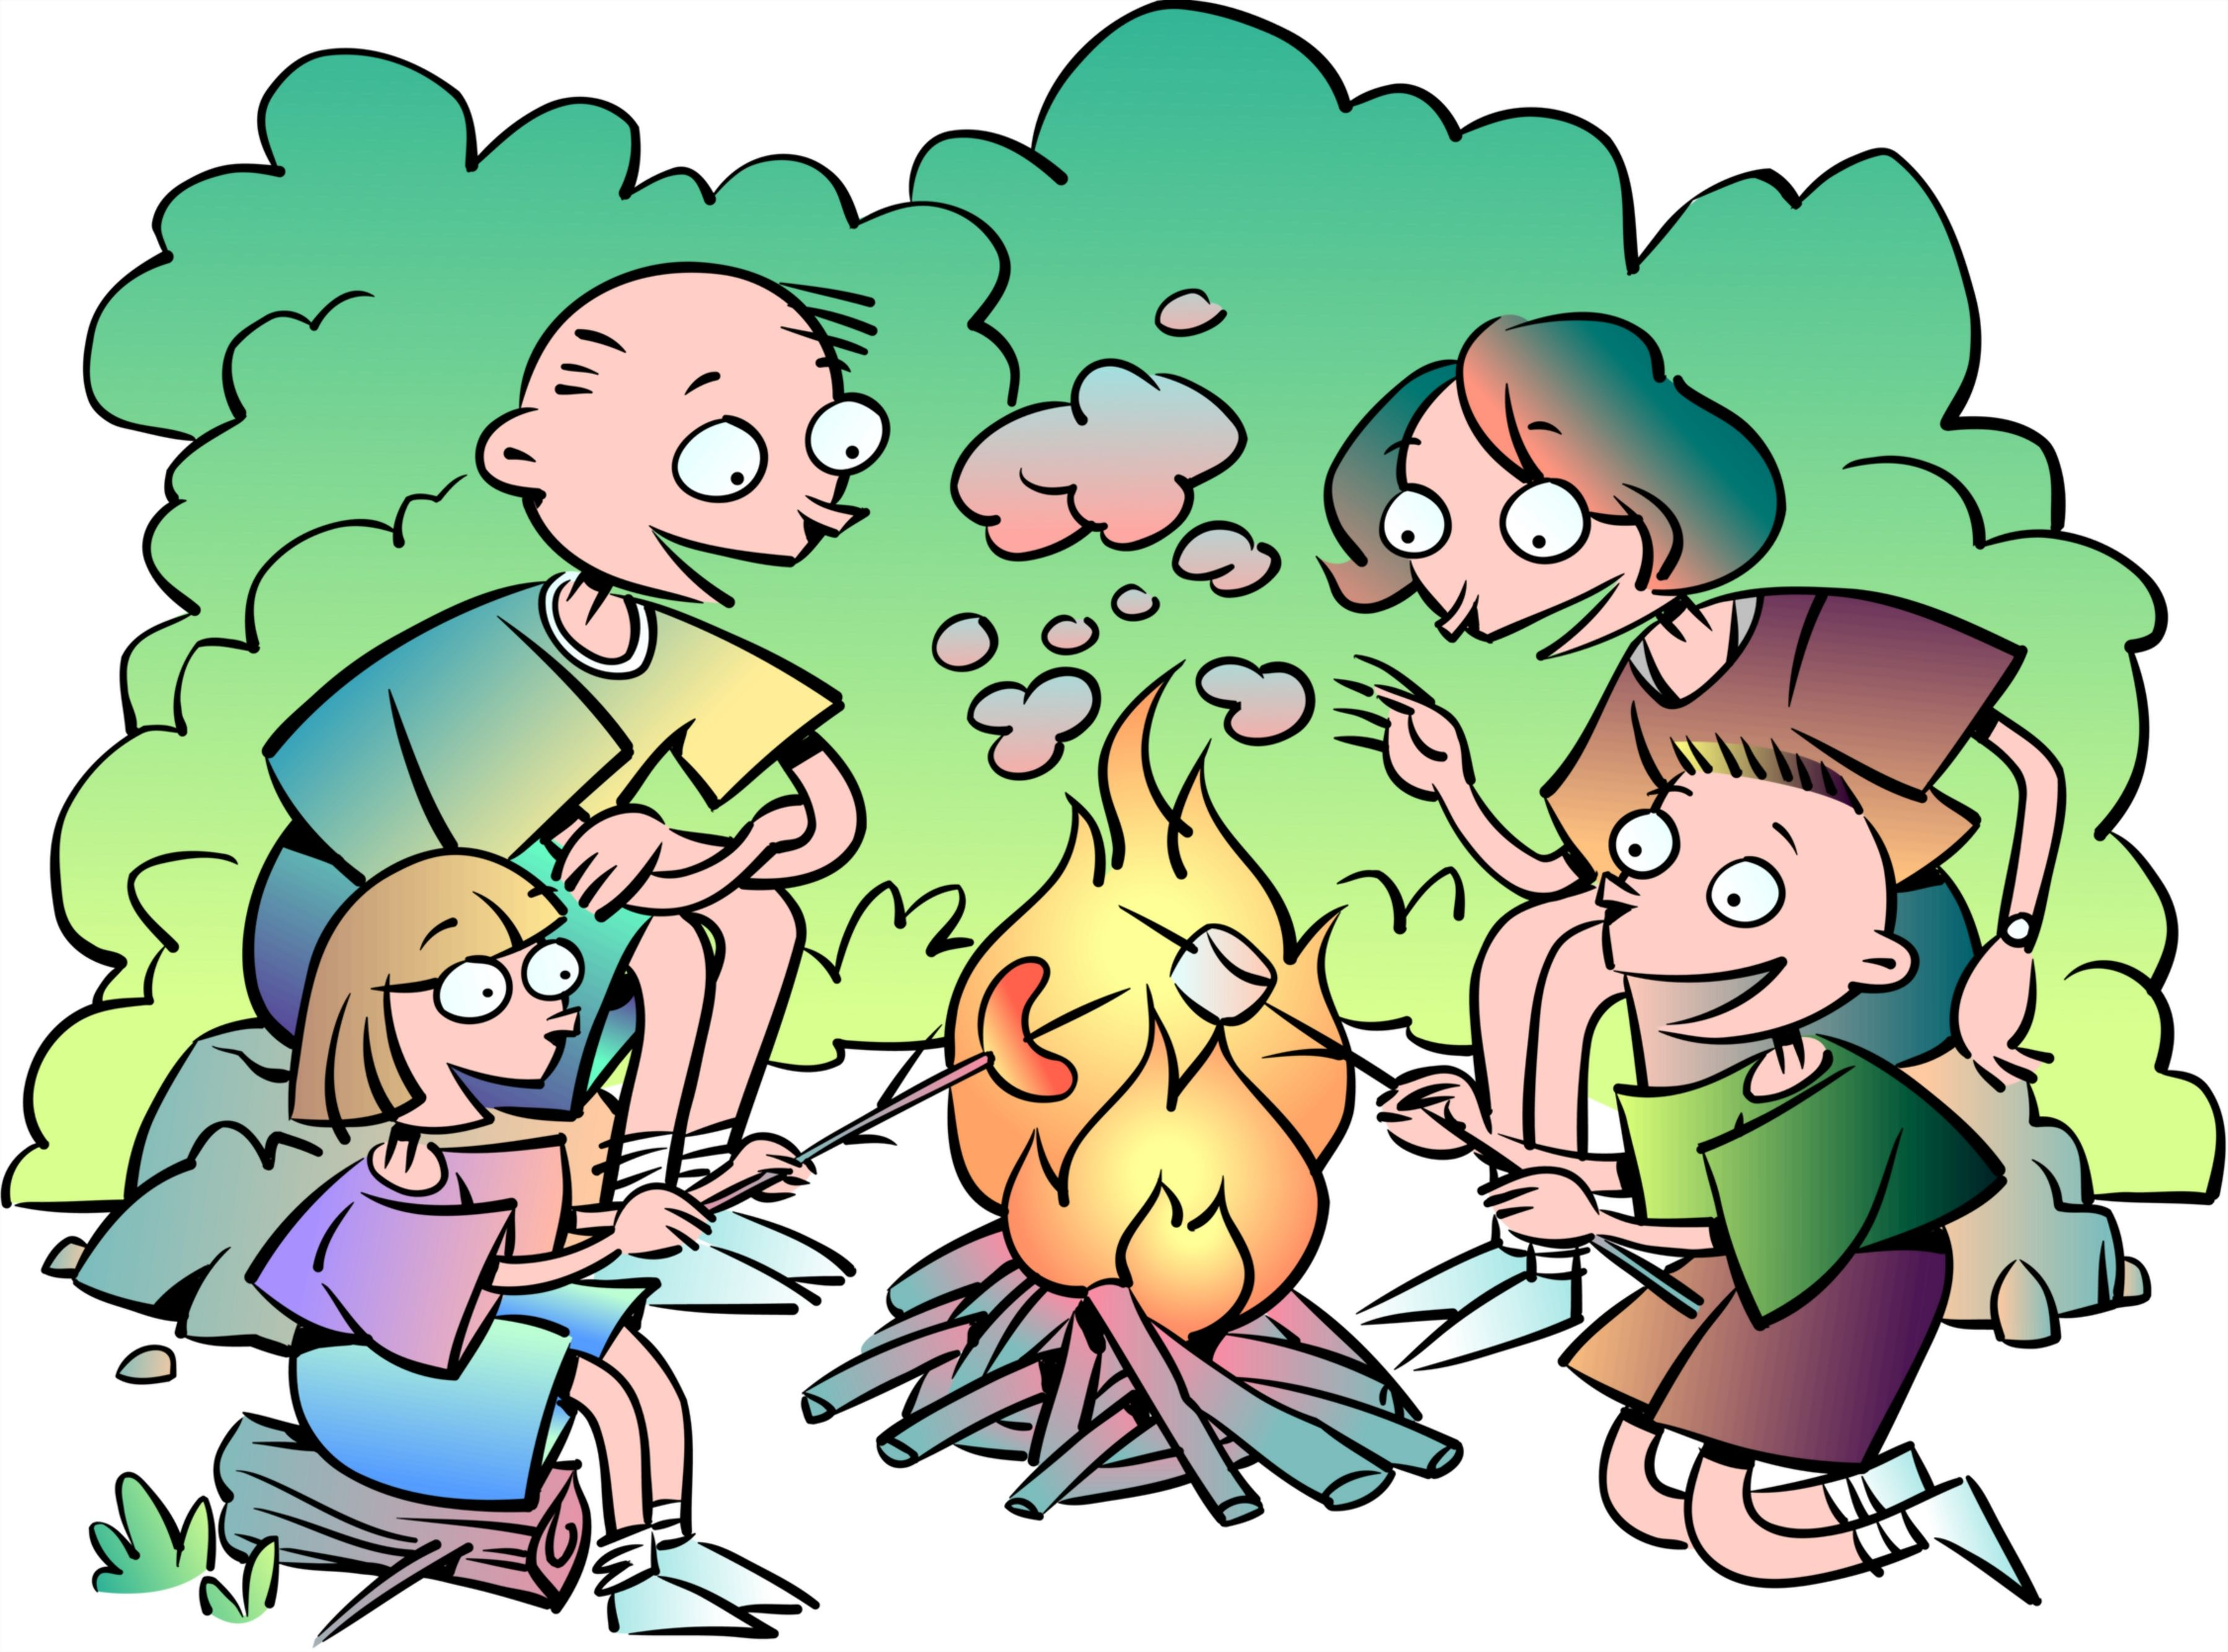 Hiking clipart kid campfire Campfire image images 4 clipart